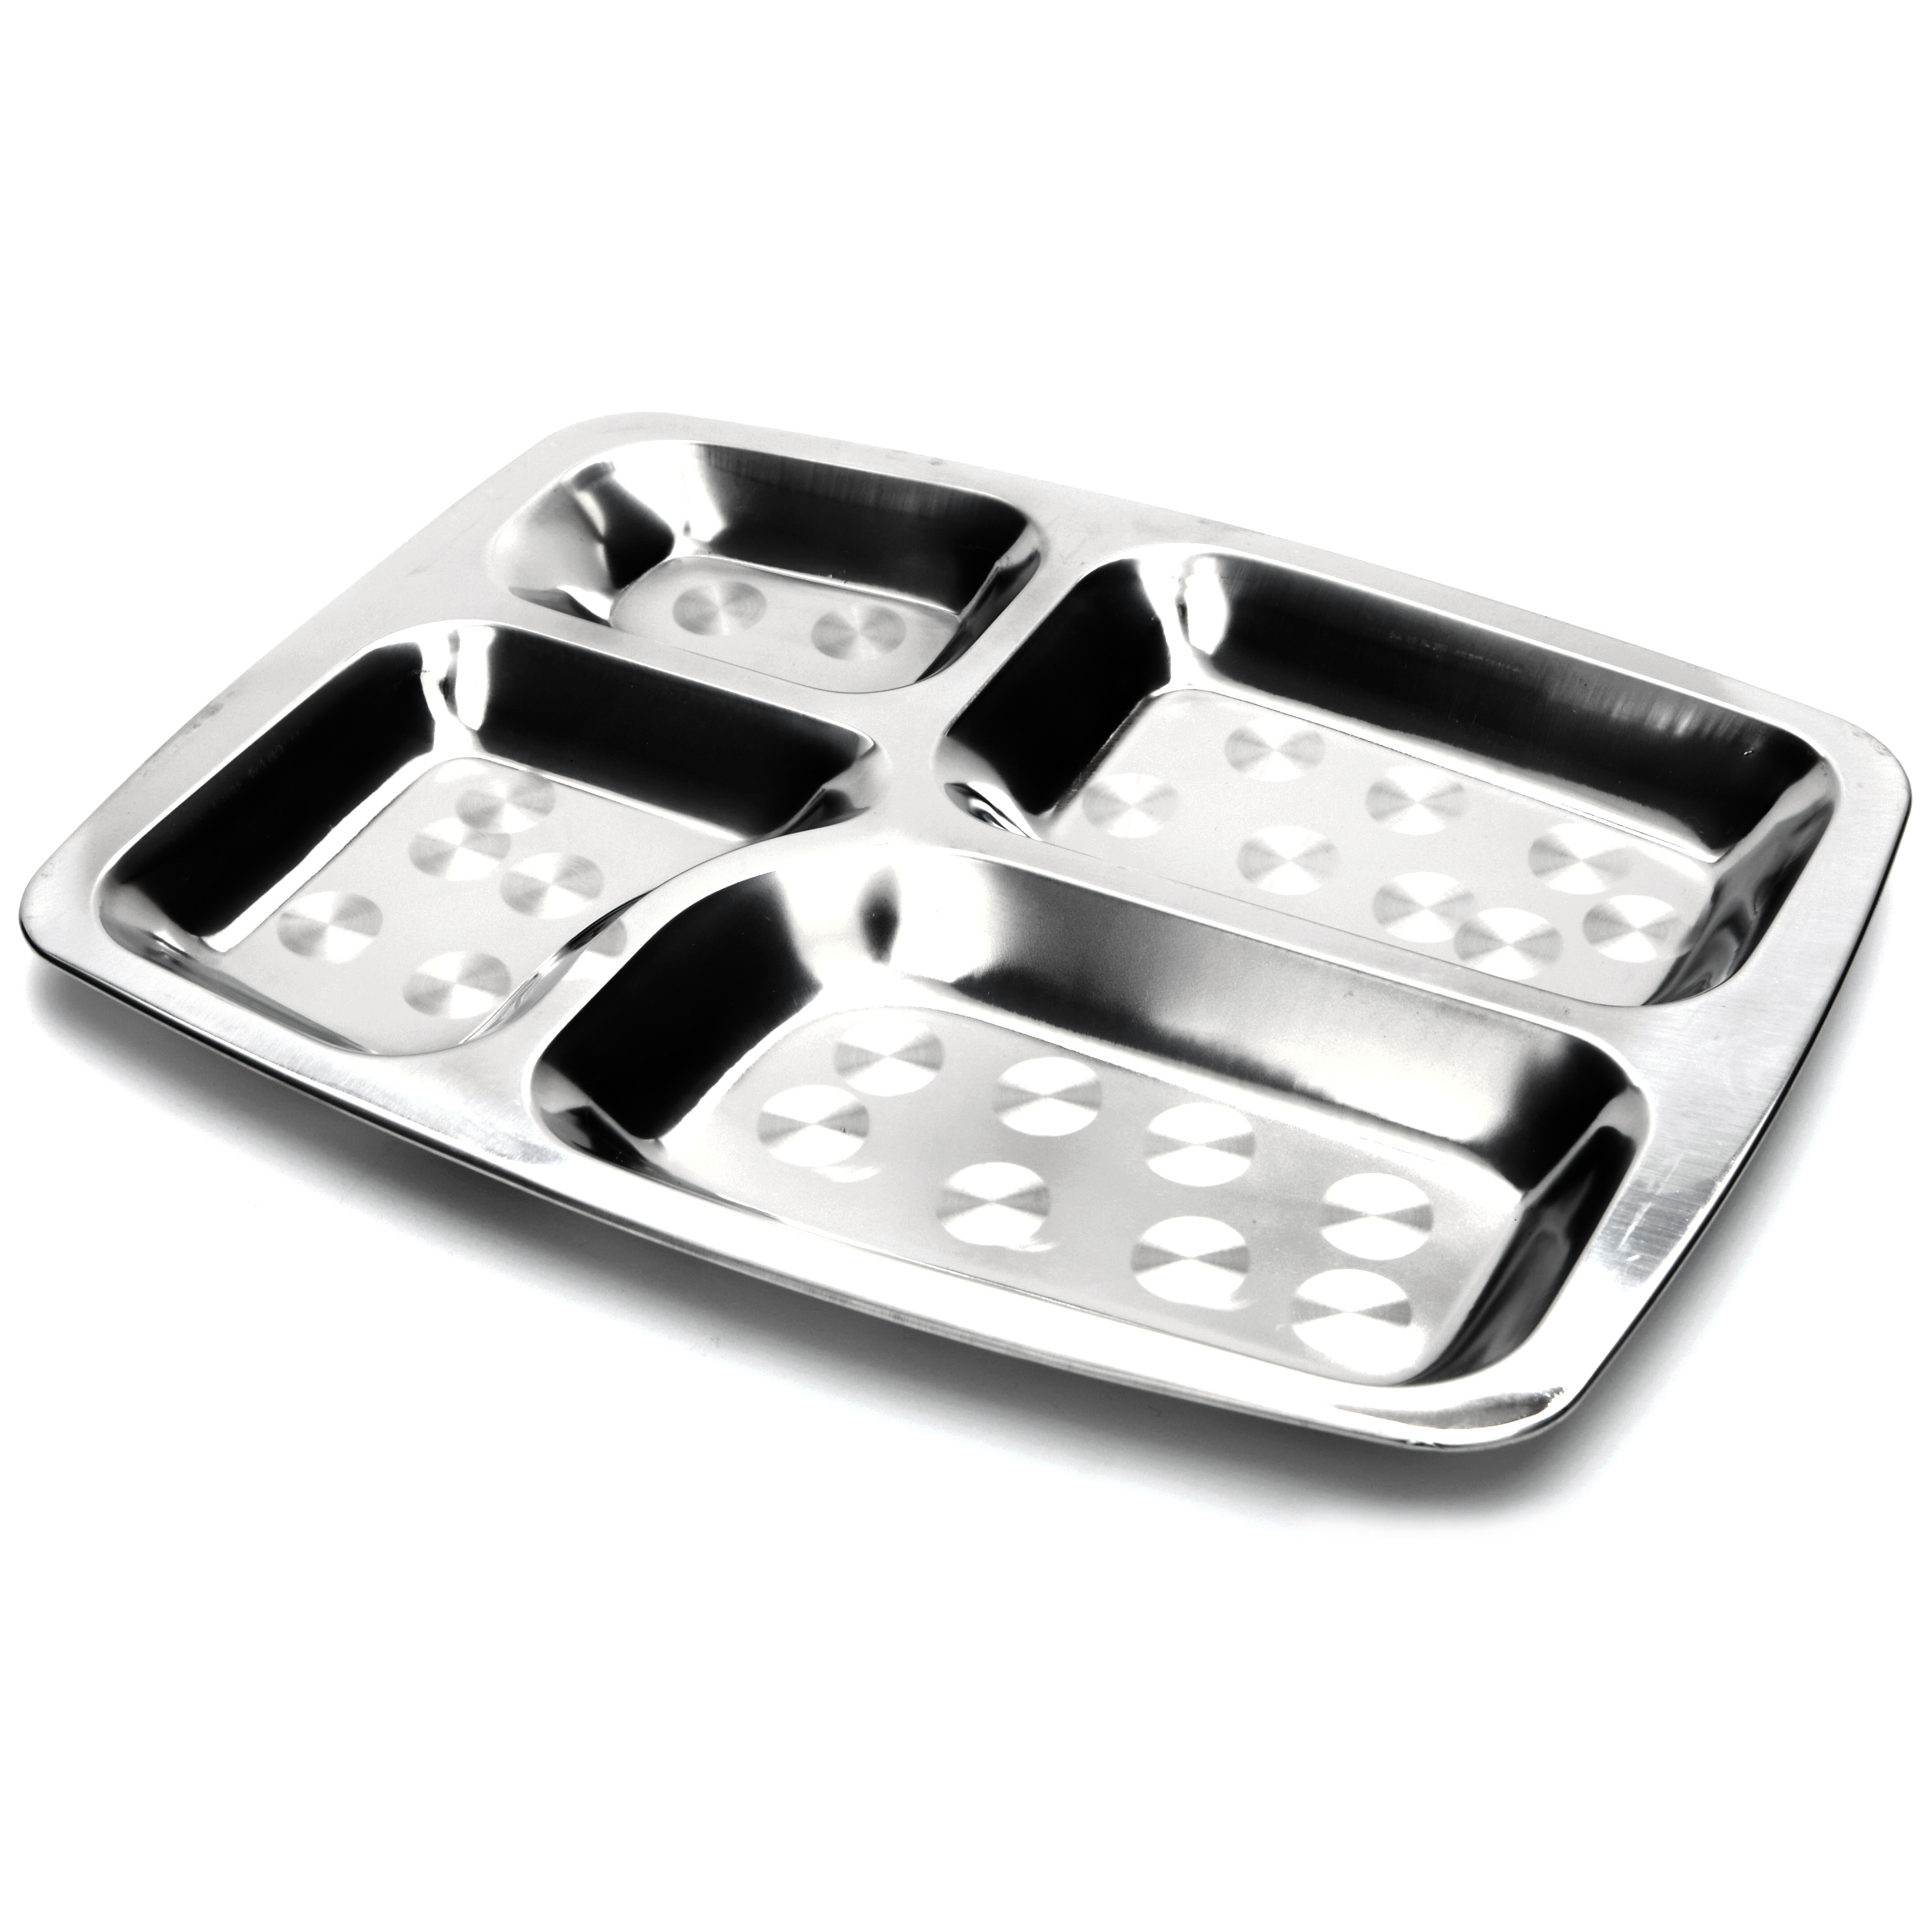 Onyx Stainless Steel Rectangular Divided Lunch Tray, Set of 2